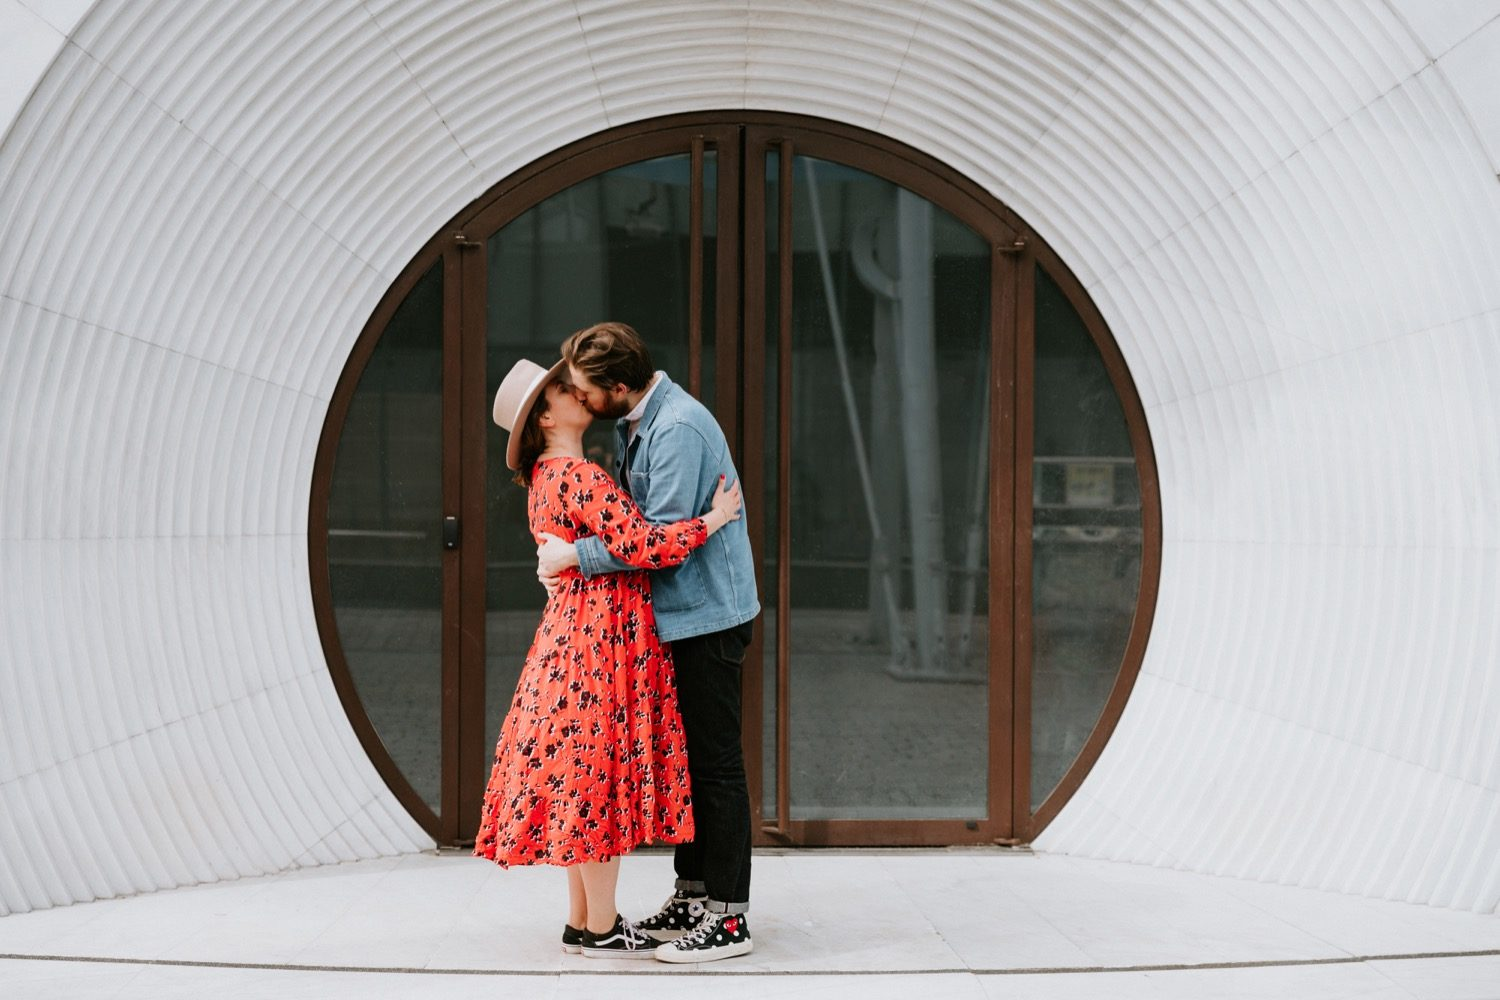 séance couple à paris,philharmonie Love Session à Paris - Julia & Max 4 - Blog Mariage